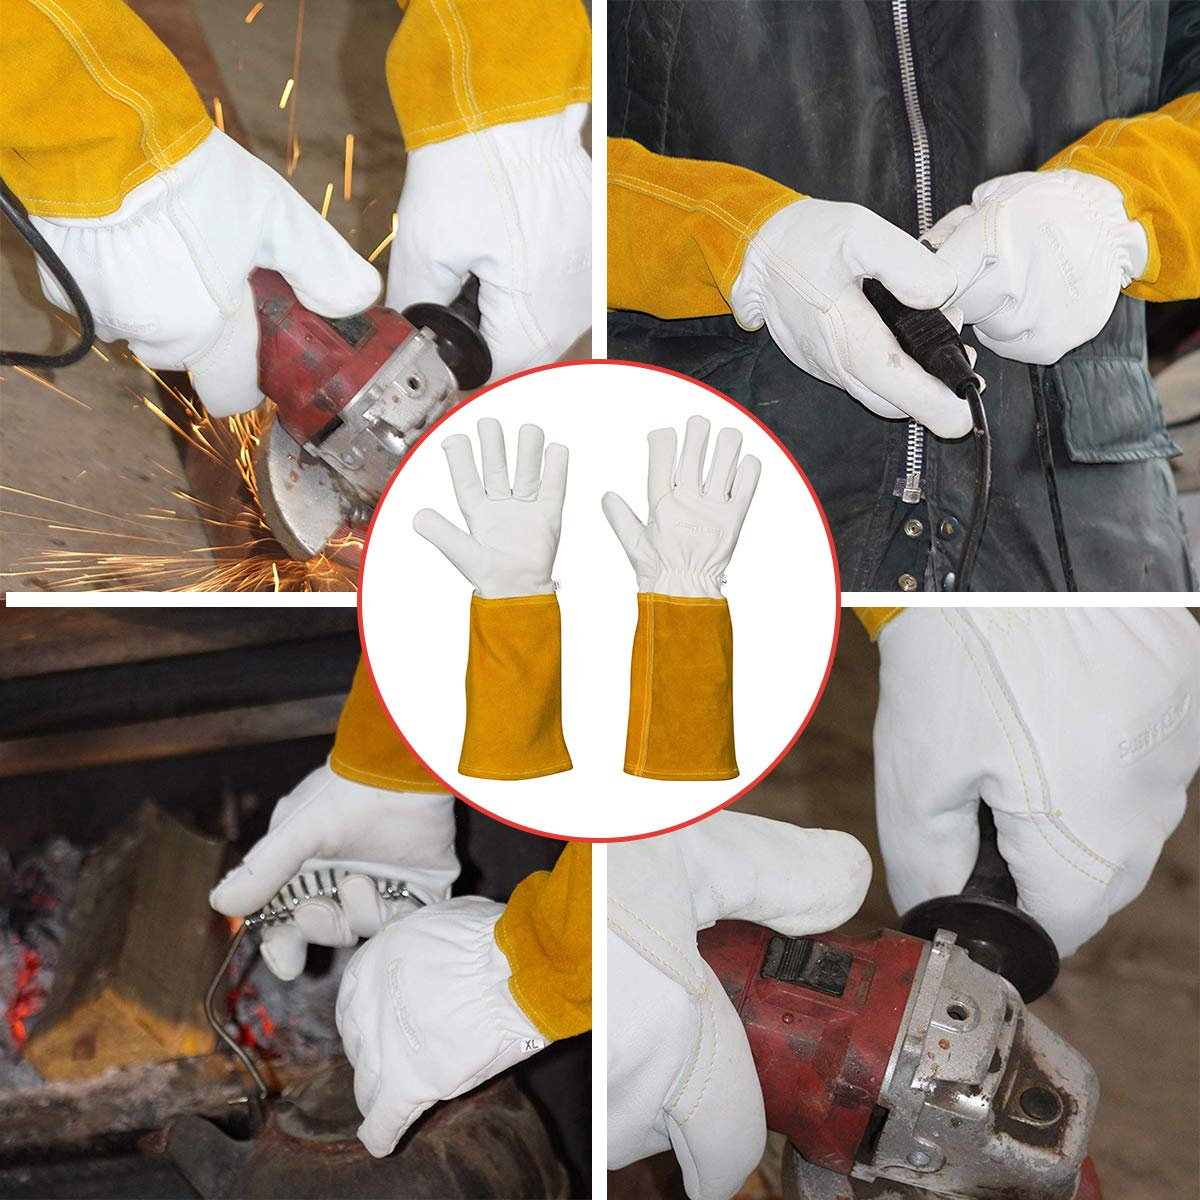 Welding Gloves for Women, Small Mens, Fireproof Heat Resistant, Top Grain Cowhide Kevlar Lined Hand Weld (Small) by Suse's Kinder (Image #8)